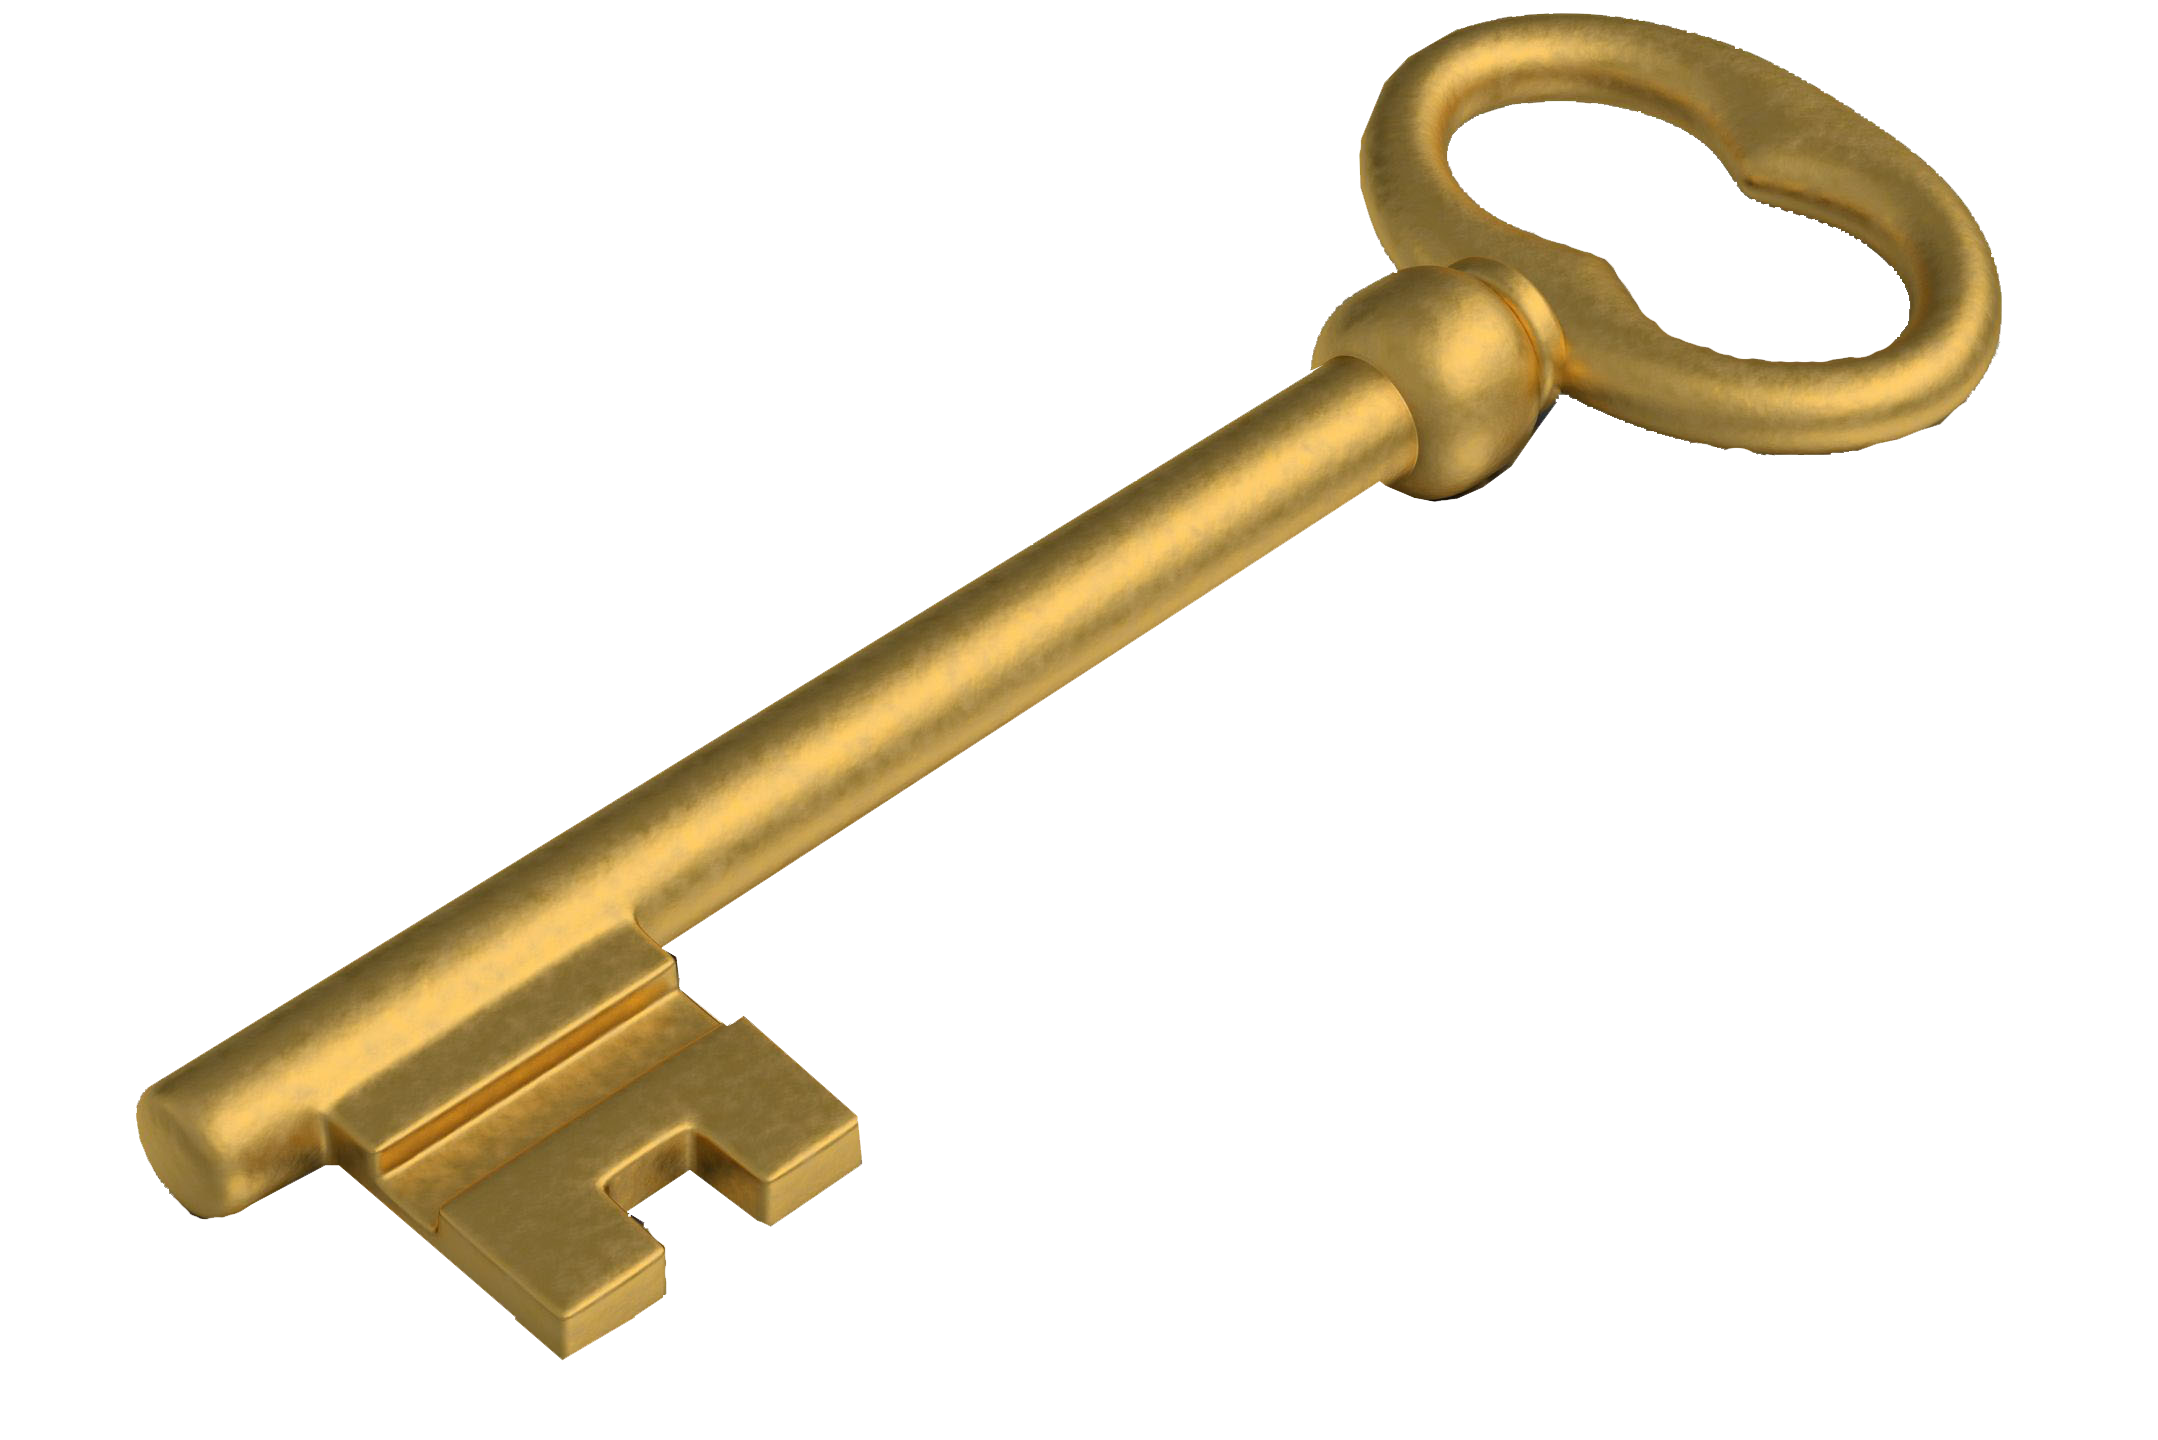 Golden Key - LIBERTY (SECURITY PRIVACY SAFETY) THE ILLUSION OF FREE WILL - TOTAL FREEDOM OF SPEECH - TOTAL FREEDOM OF THE PRESS - UNIVERSAL SPENDING AUTHORITY - PRIVATE PROPERTY - FREE LAND - THERE IS NO GOVERNMENT - A GUARANTEED LIFETIME INCOME - NOW YOU OWN YOUR HOME AND LAND - NOW YOU HAVE AN INCOME - YOU WILL ALWAYS OWN YOUR HOME AND LAND - YOU ARE SAFE AND SECURE